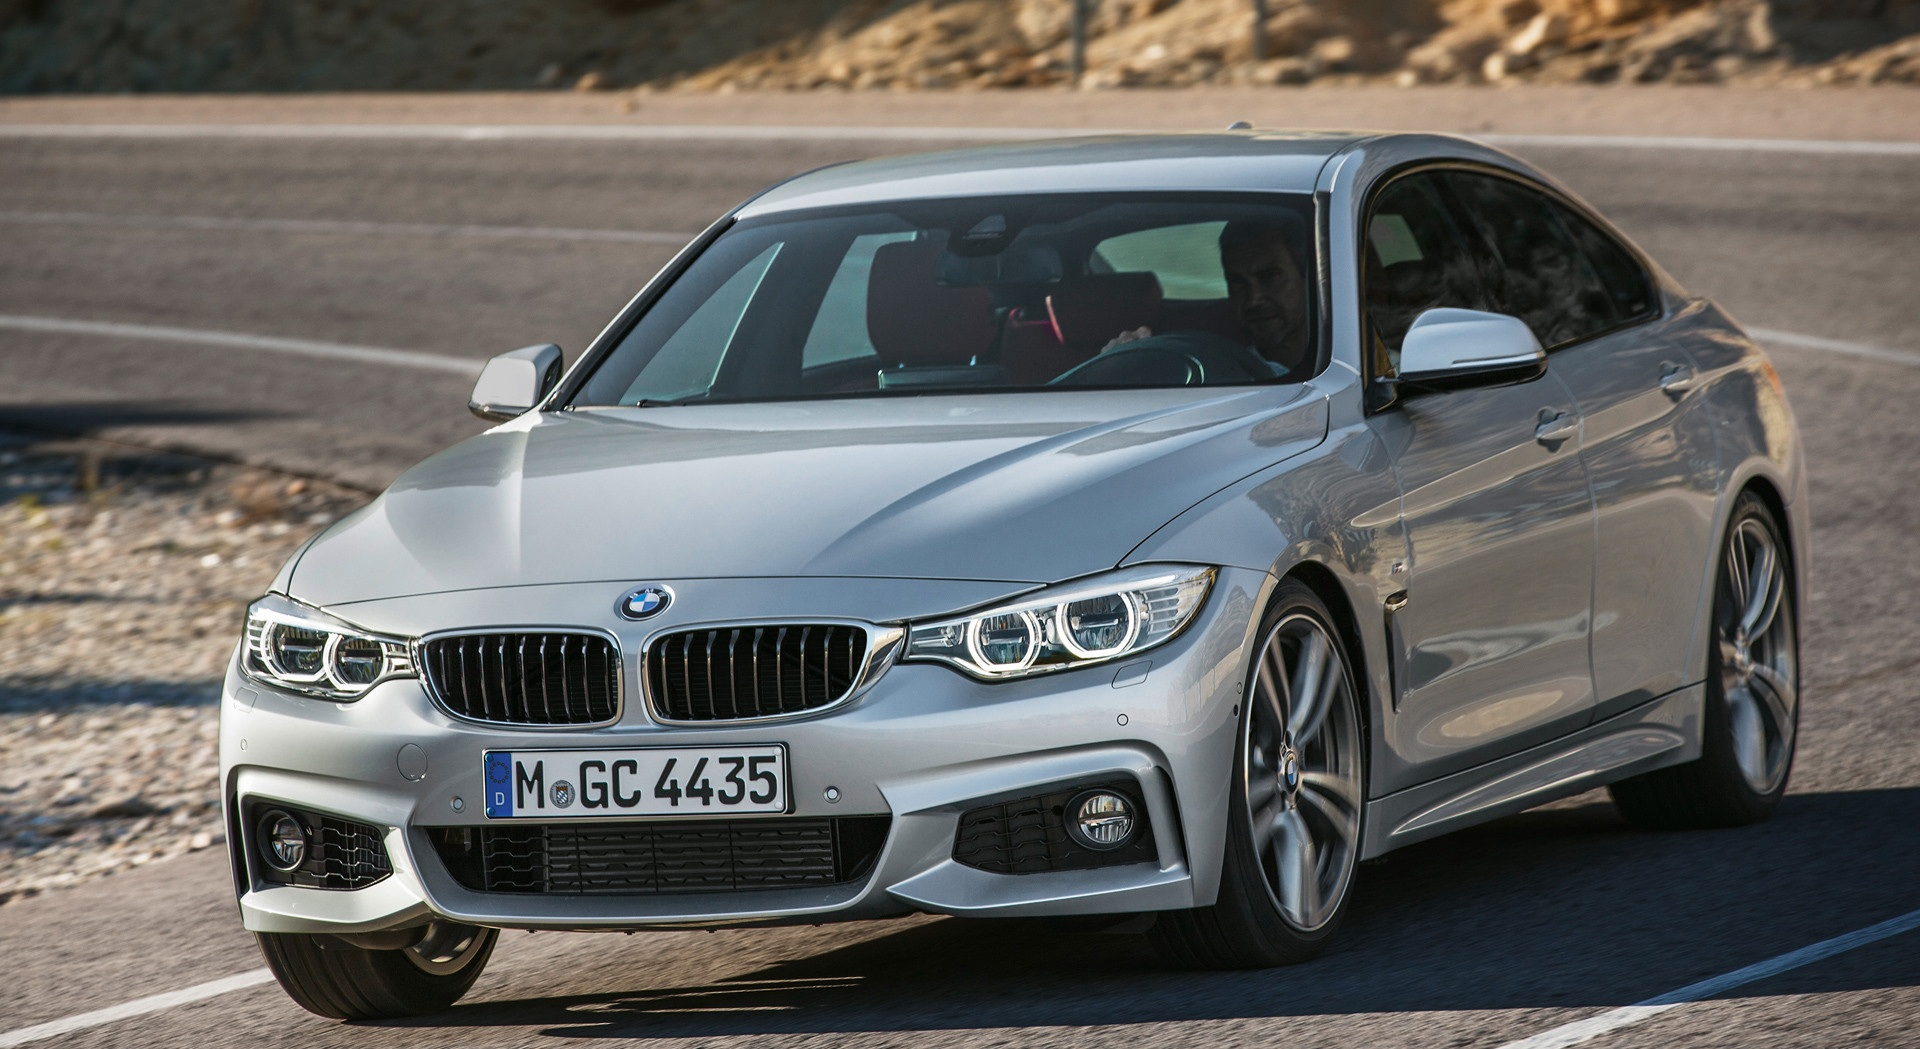 2015 Bmw 4 Series Gran Coupe Front (View 8 of 11)